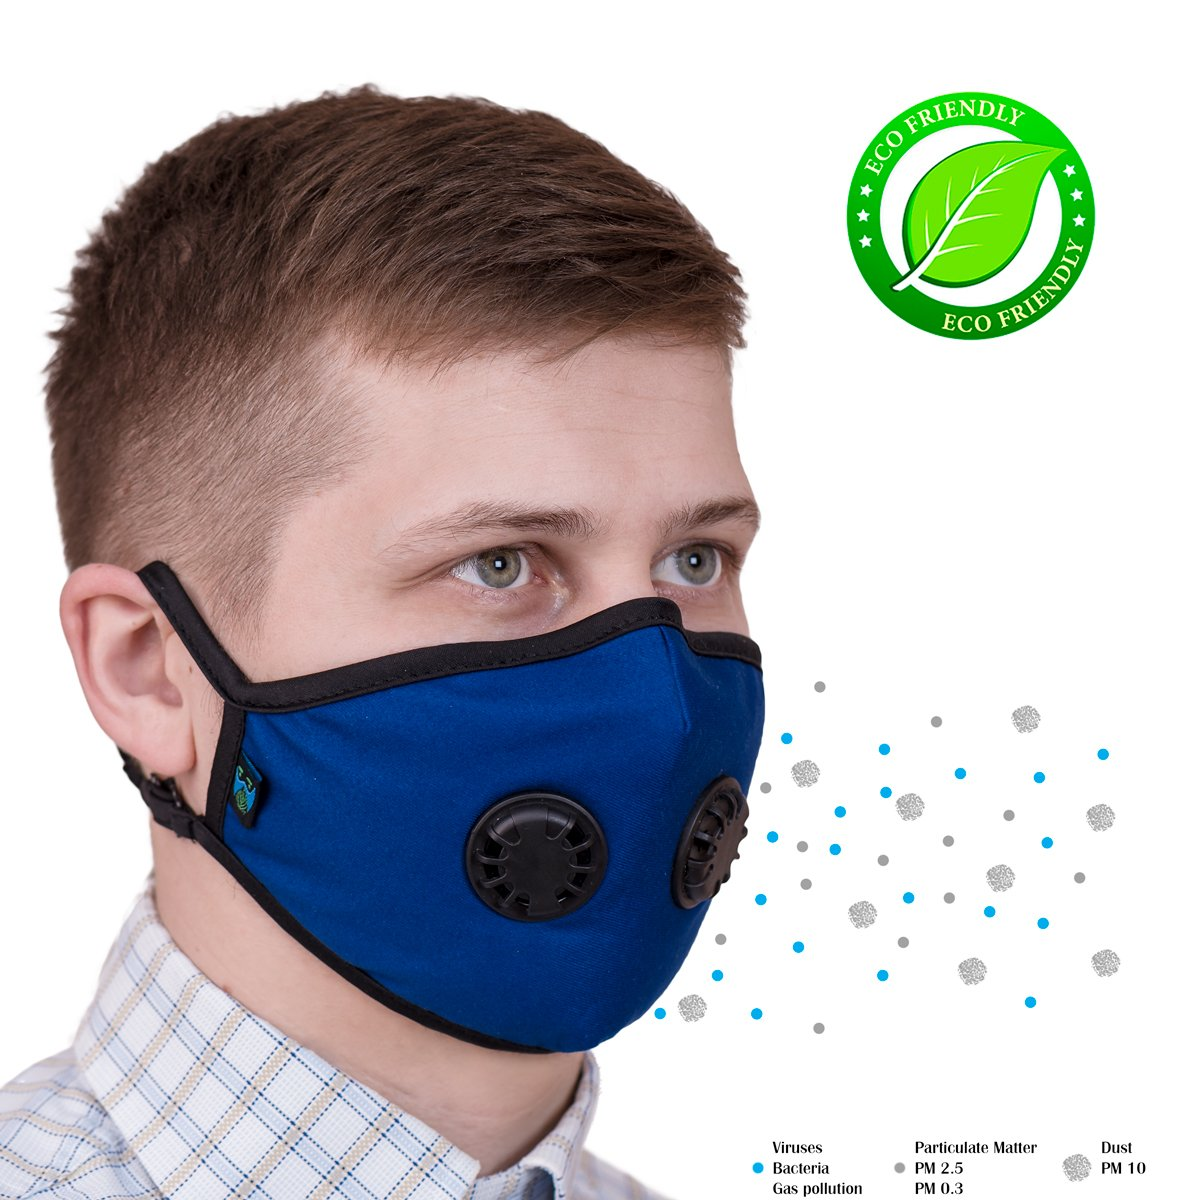 Mask Military Protection N100 N99 Grade Pollution N95 Torespire